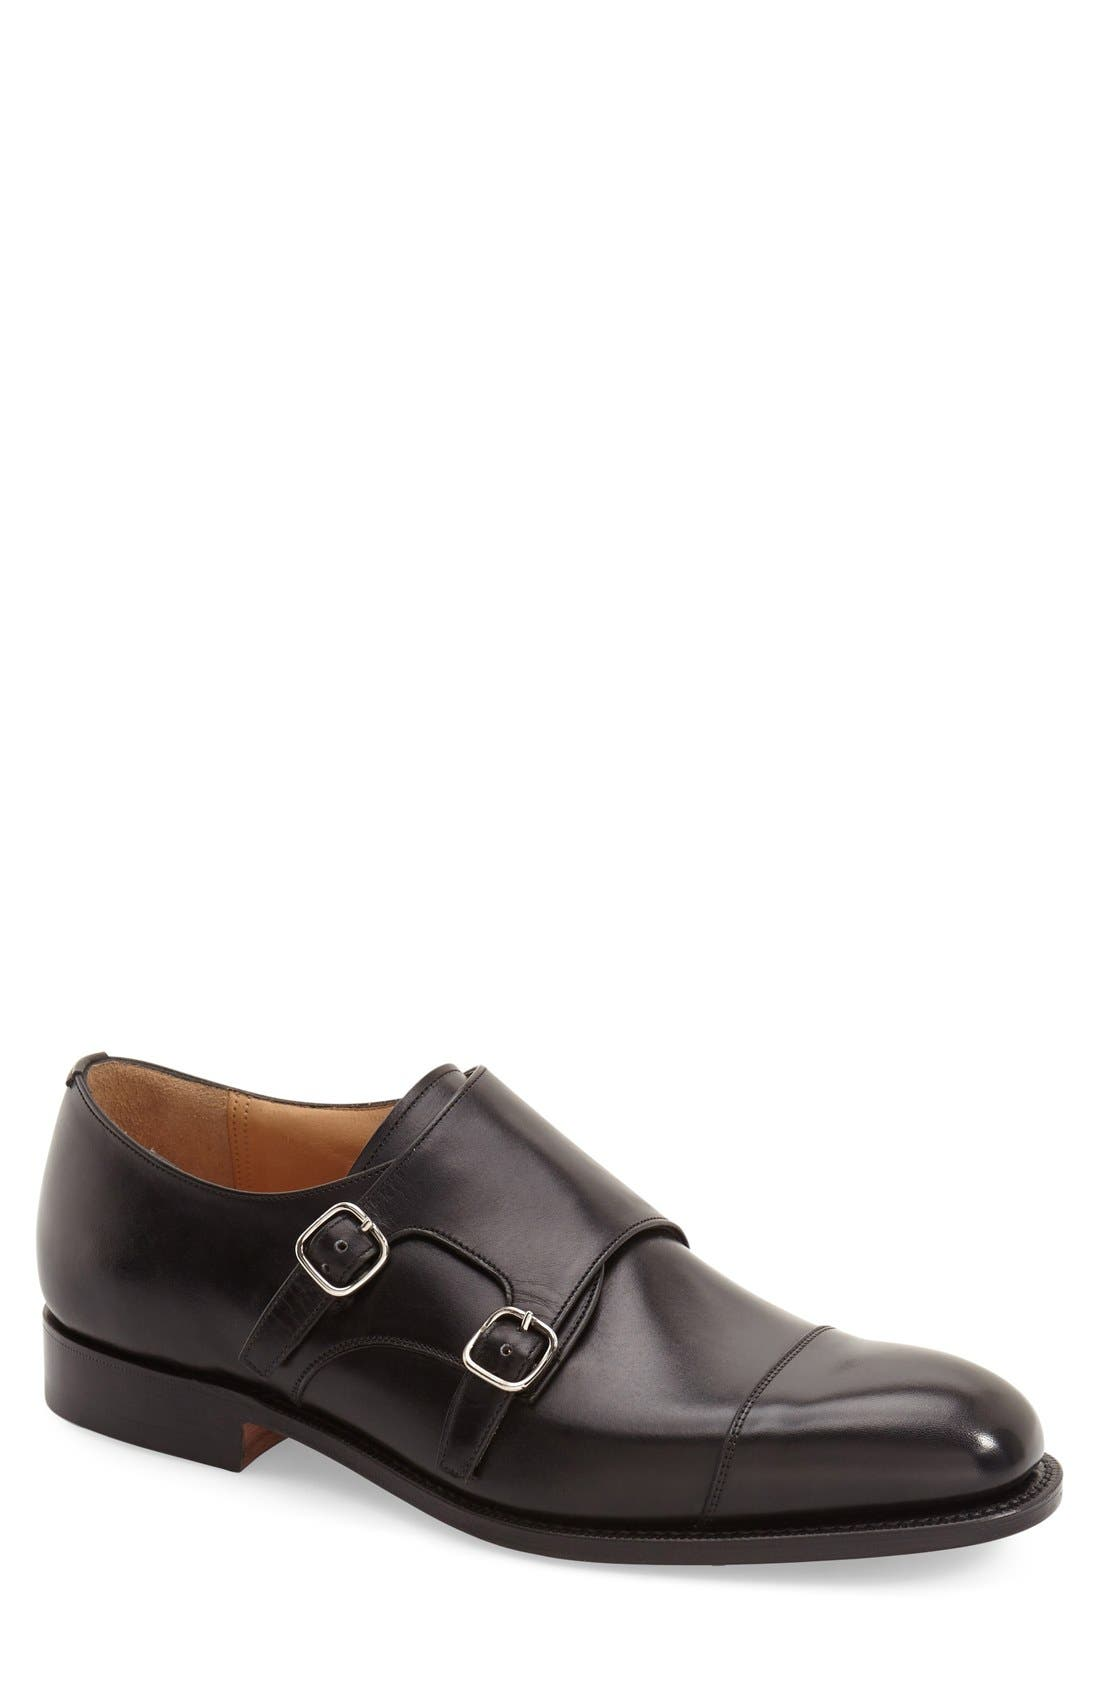 Alternate Image 1 Selected - Church's 'Cowes' Double Monk Strap Shoe (Men)